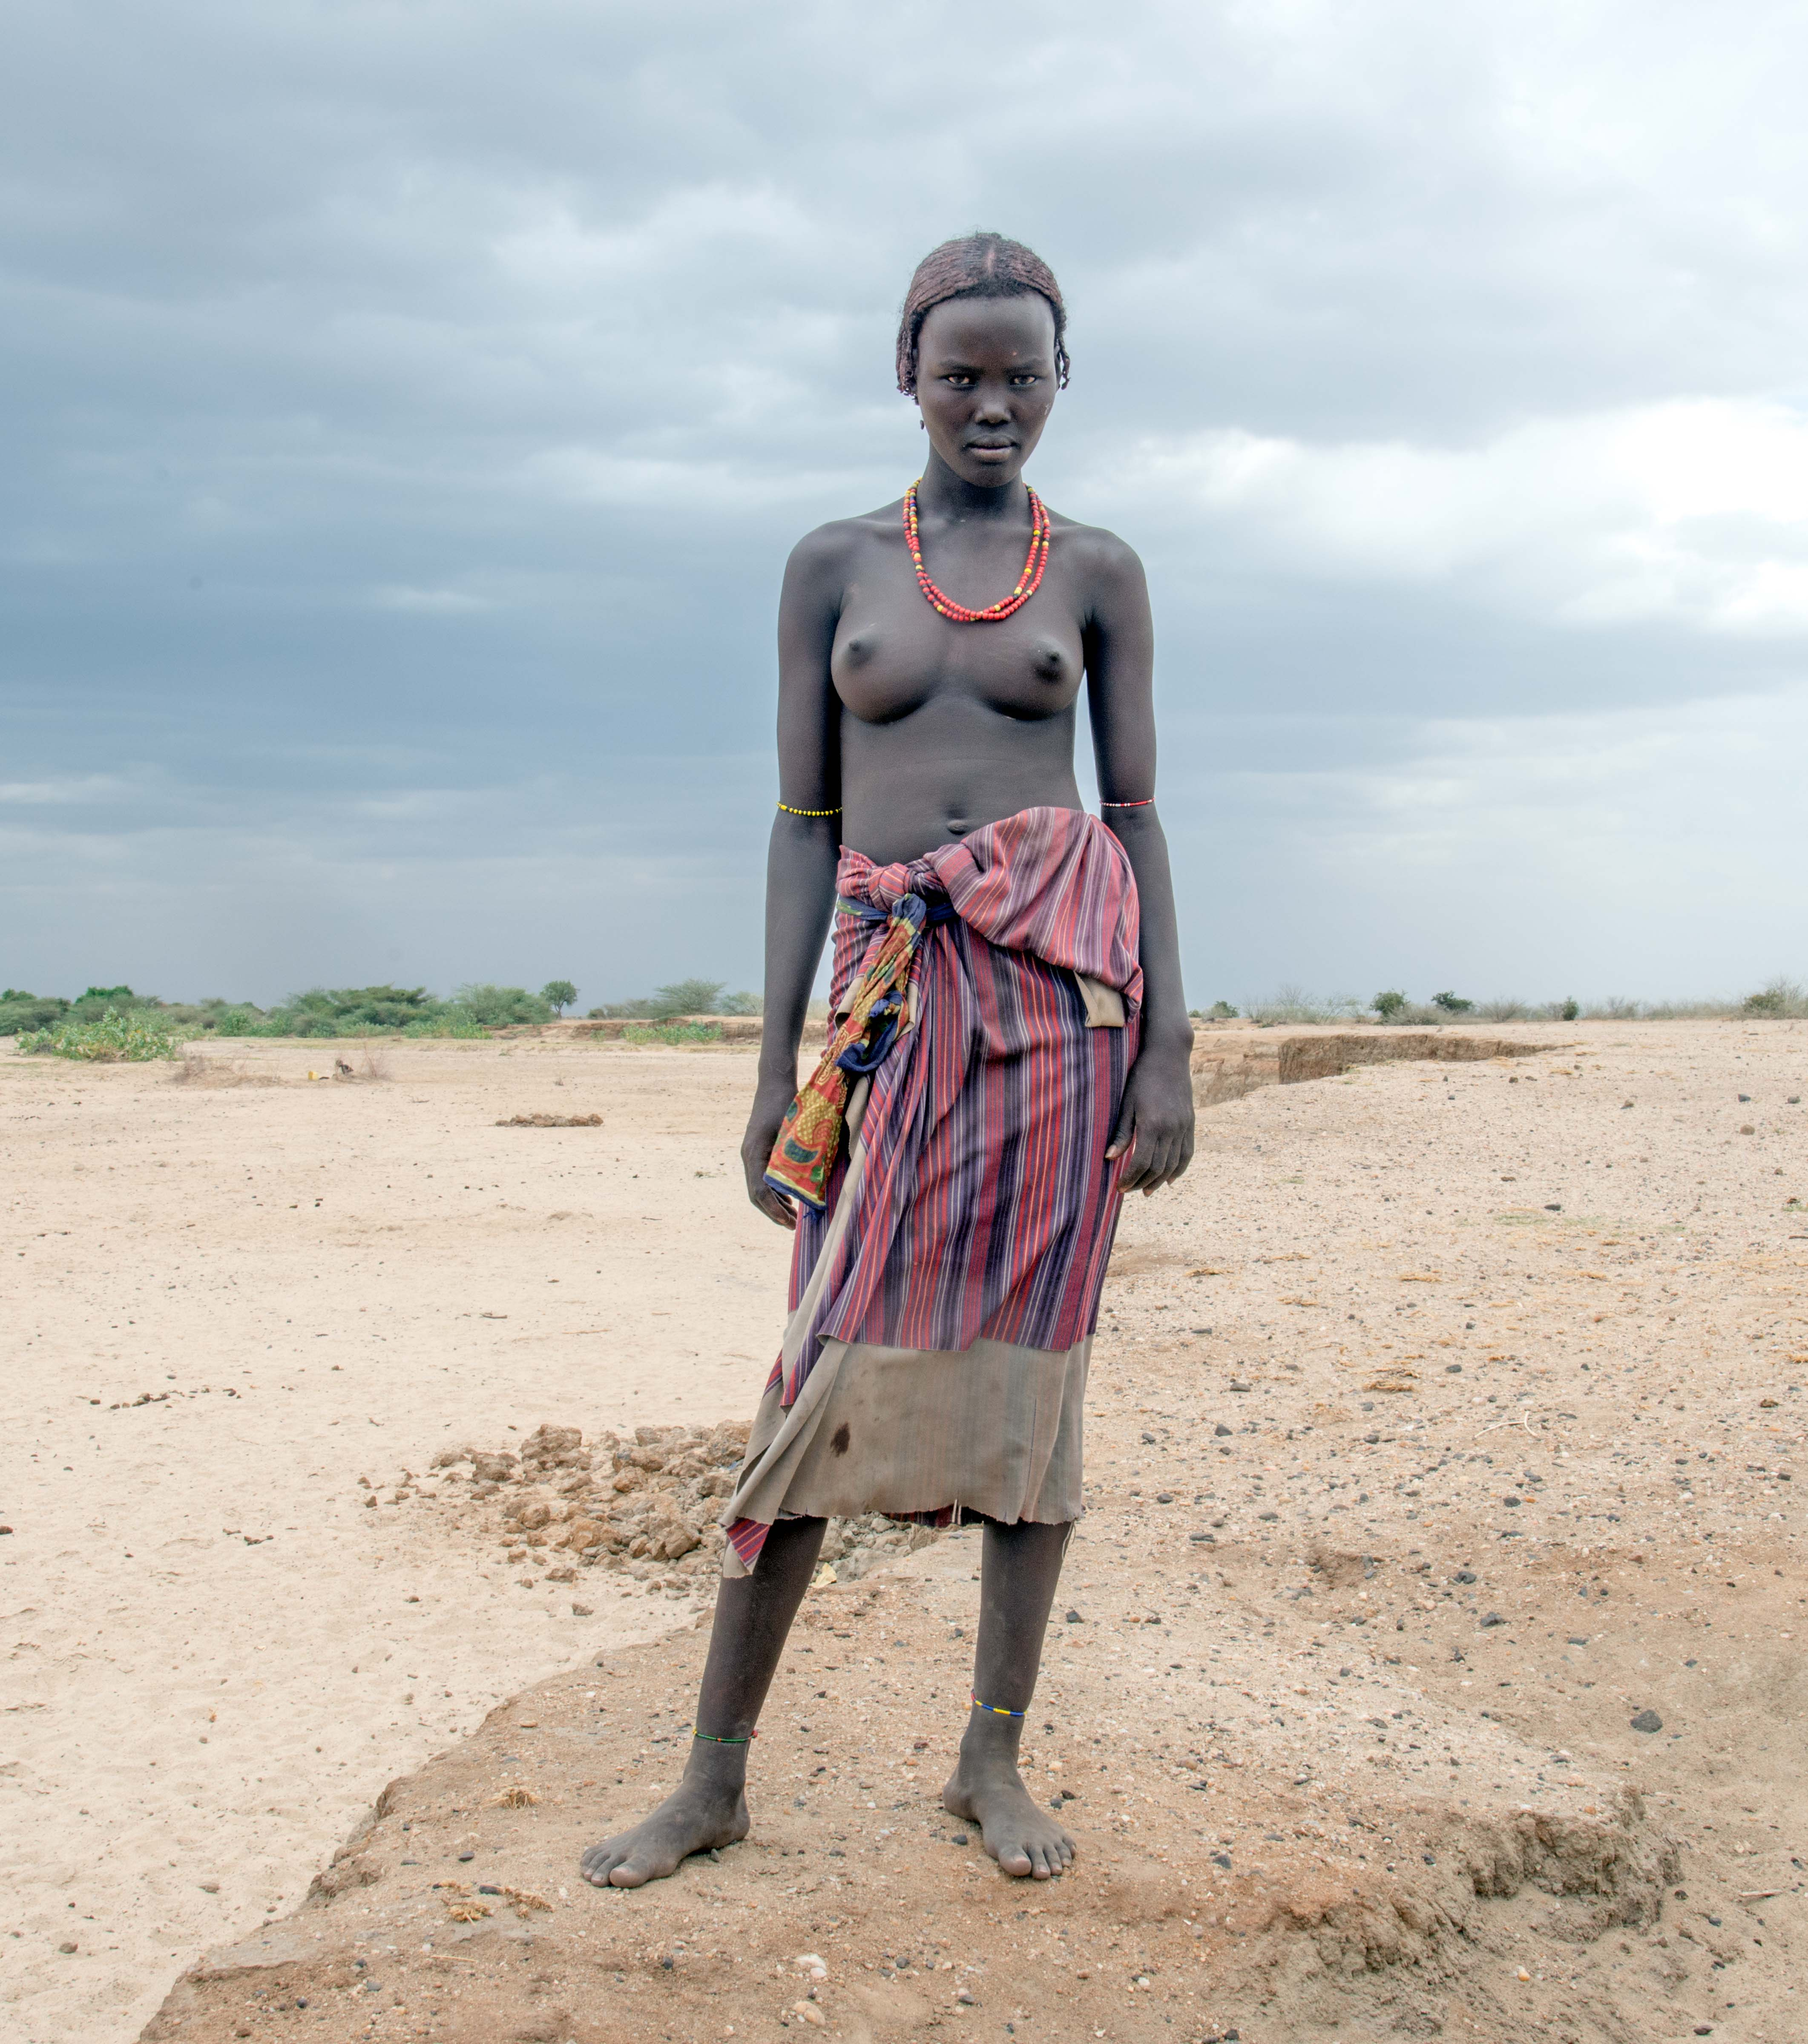 Dasenech Girl at Dry Riverbed